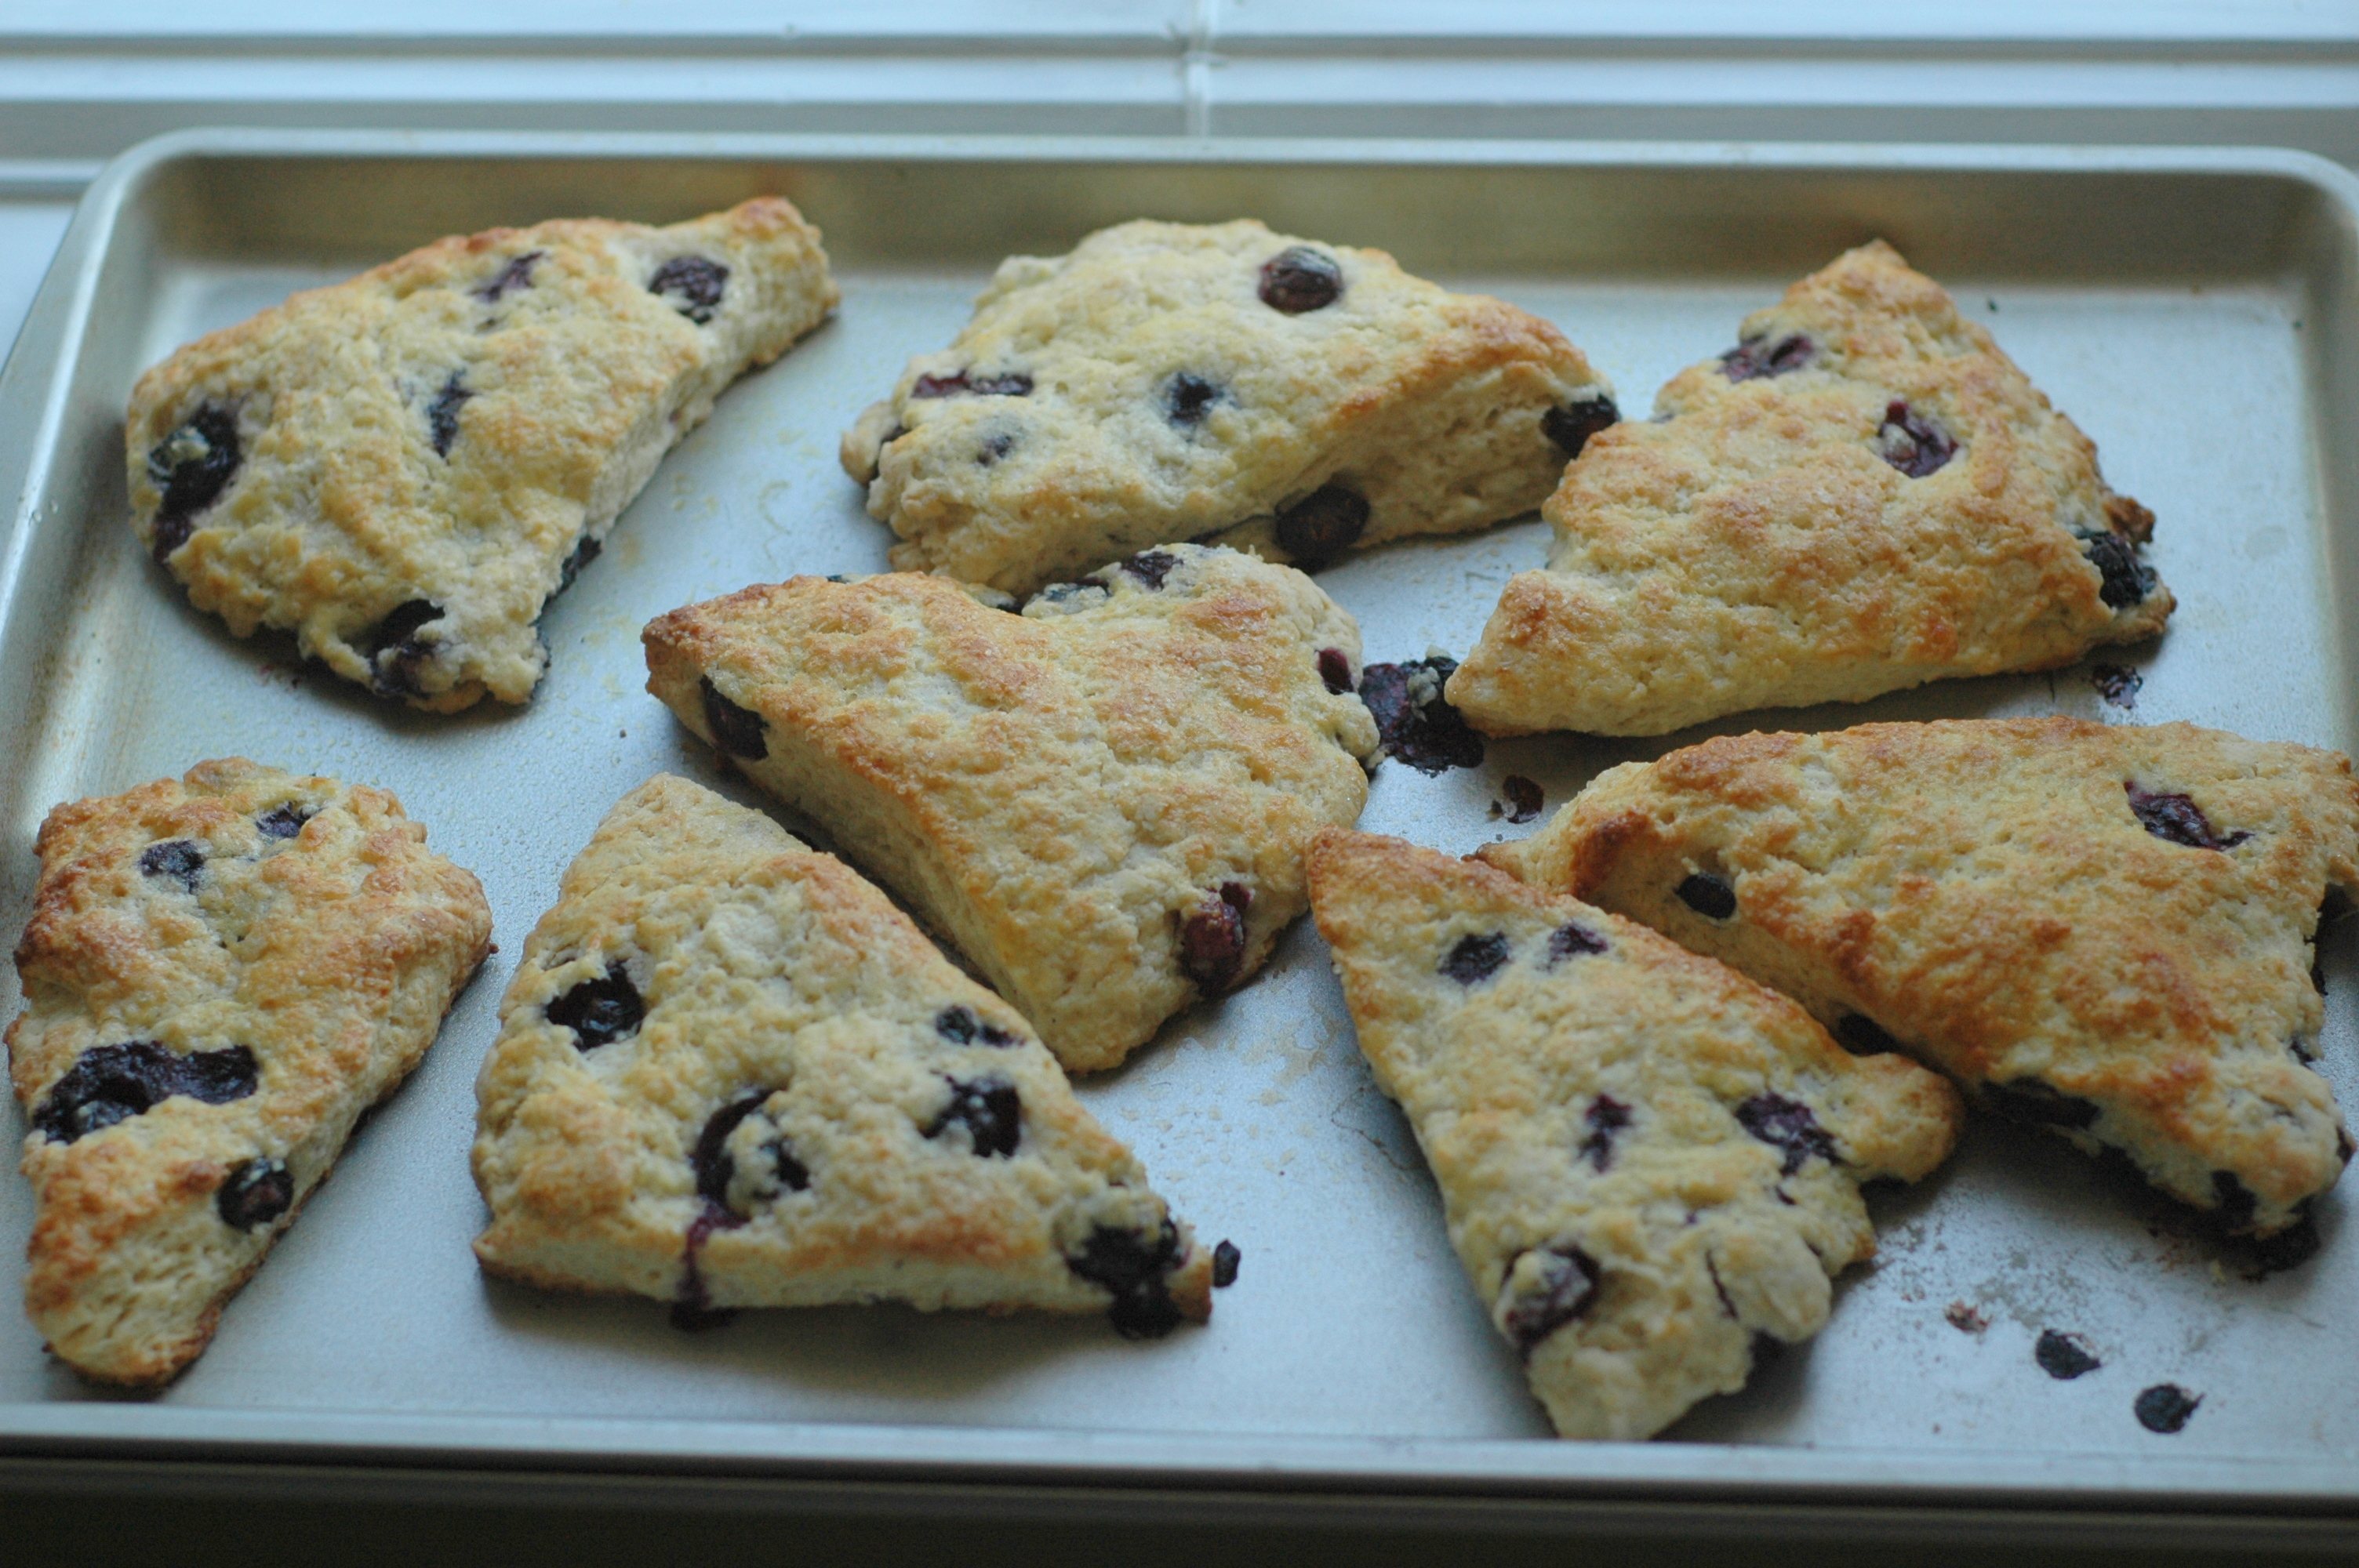 ... desserts: Blueberry Scones and Raspberry Mousse Pie | Lessons in Food